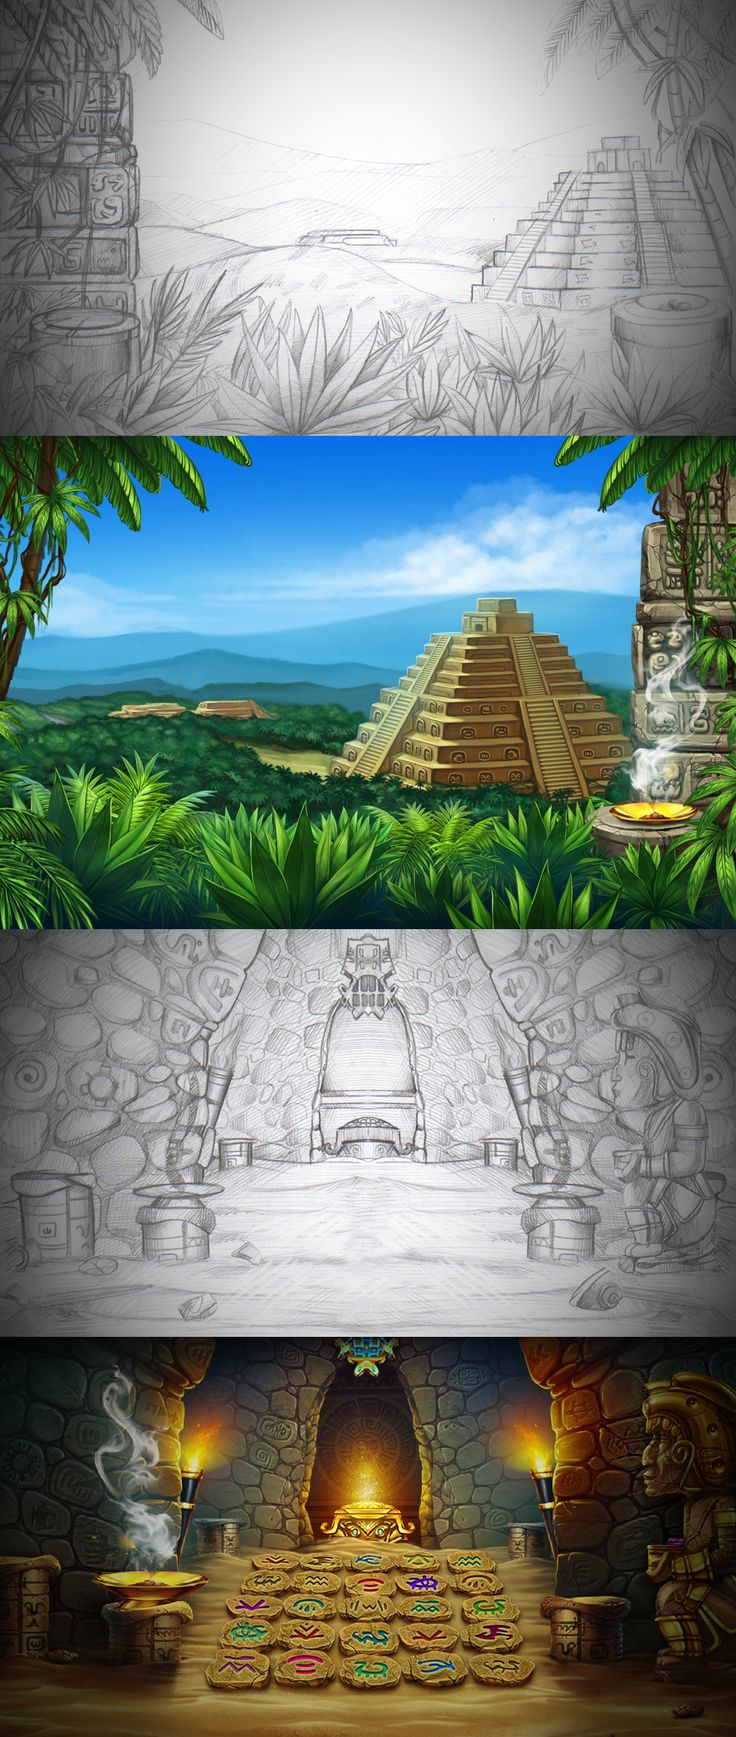 """Graphic design of backgrounds for the game slot-machine """"Ikitan's quest"""" http://slotopaint.com/"""